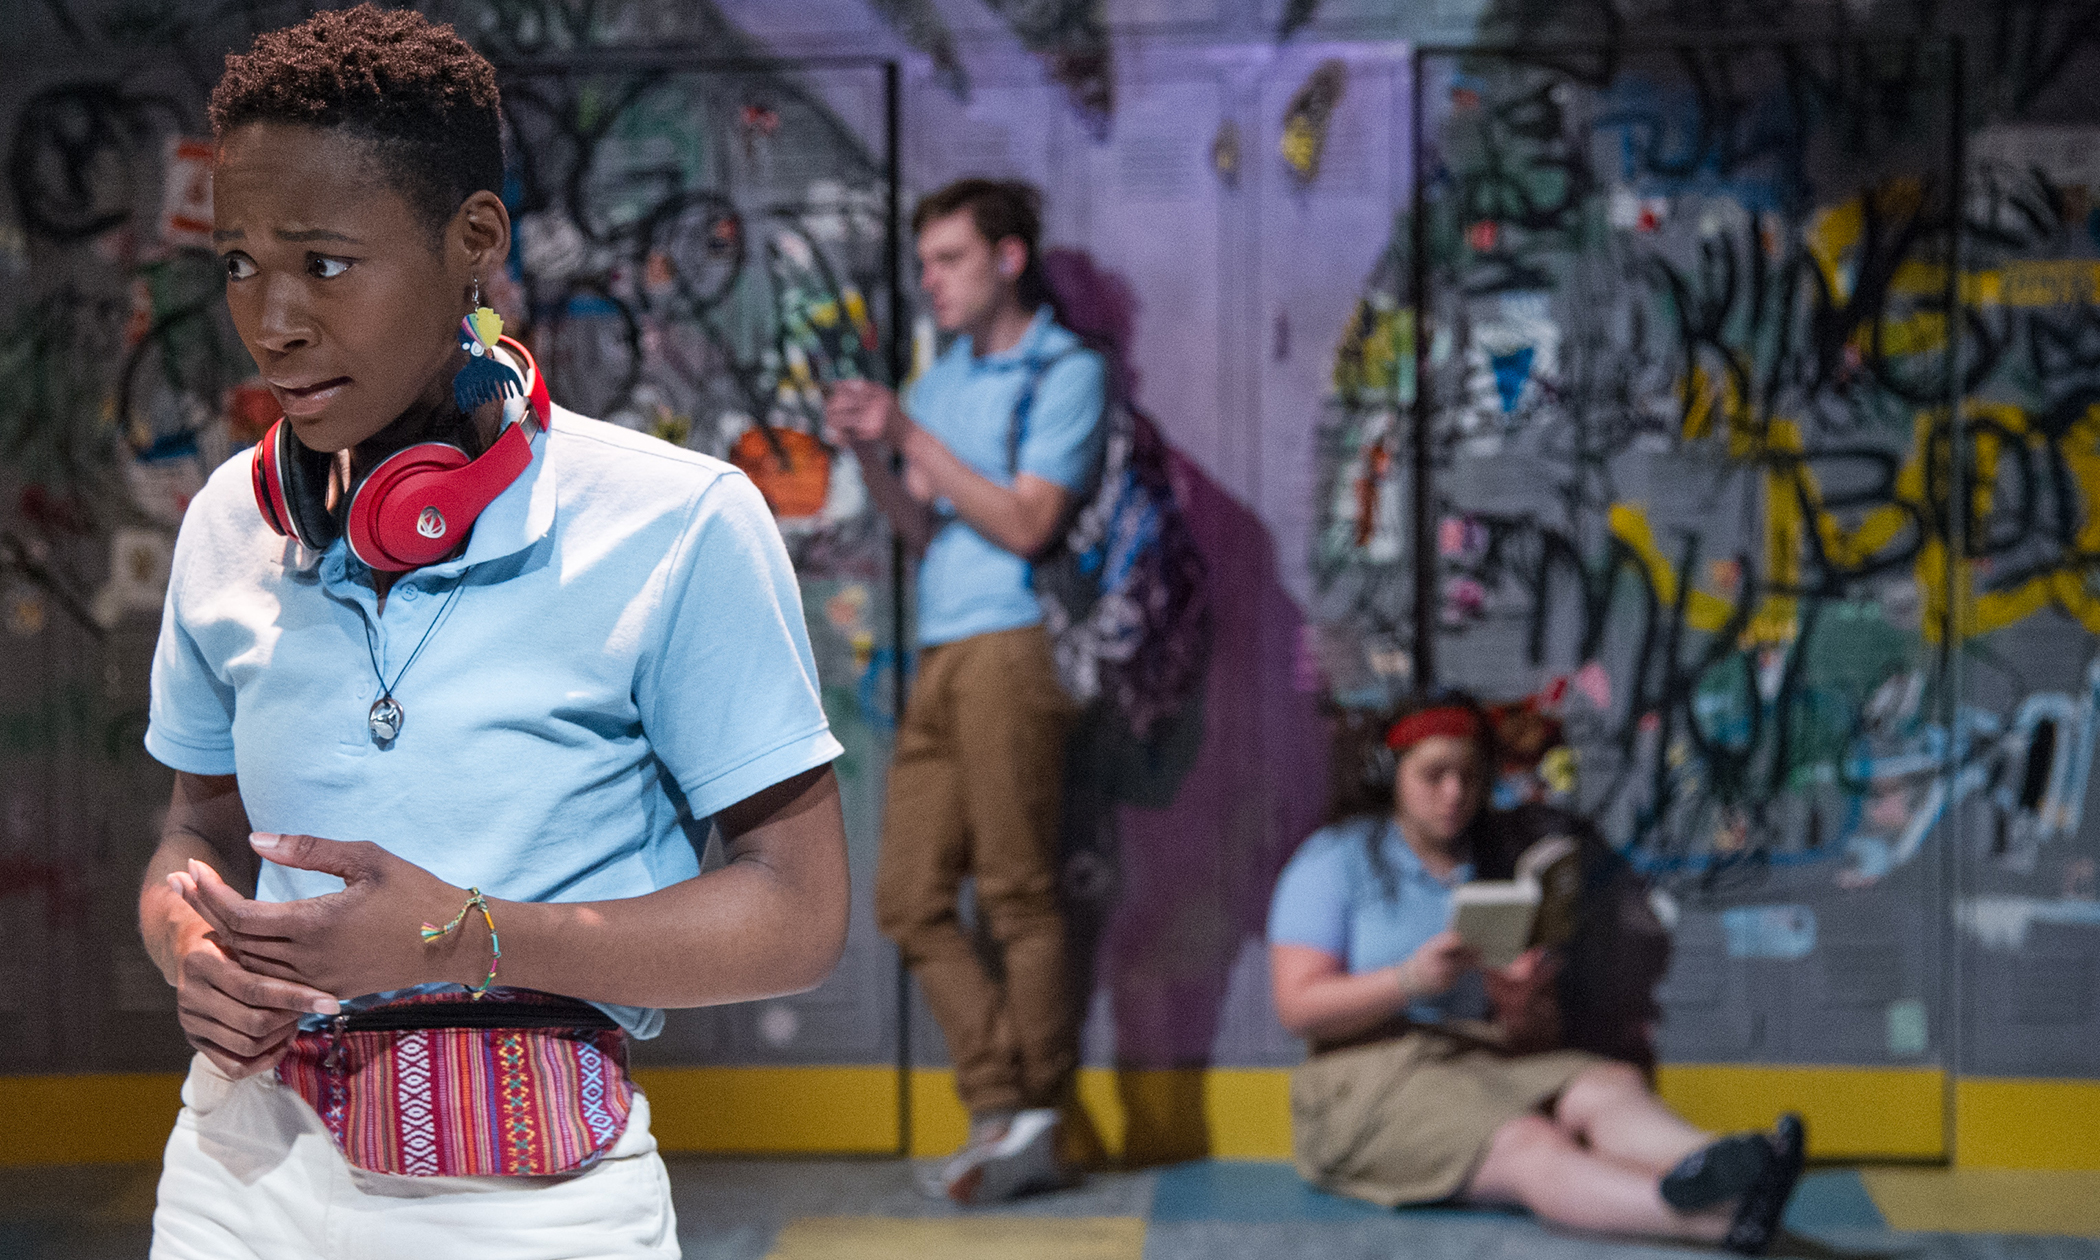 Three young actors in school uniforms onstage in front of a graffiti wall.